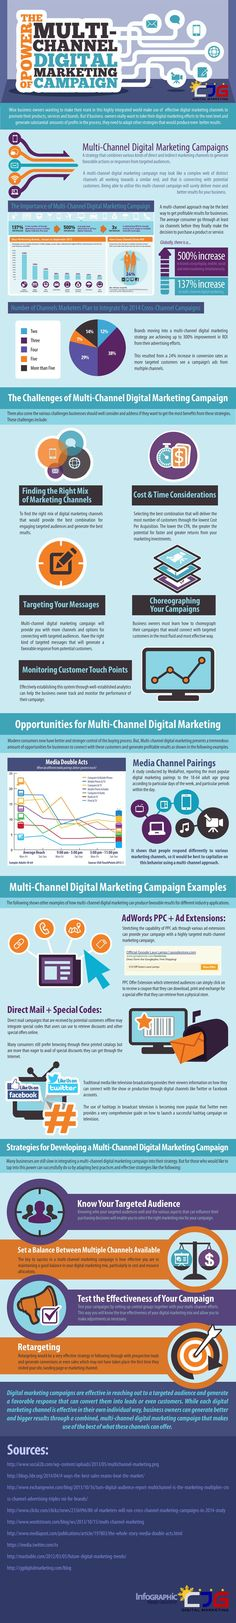 The Power of Multi-Channel Digital Marketing Campaign (Infographic)